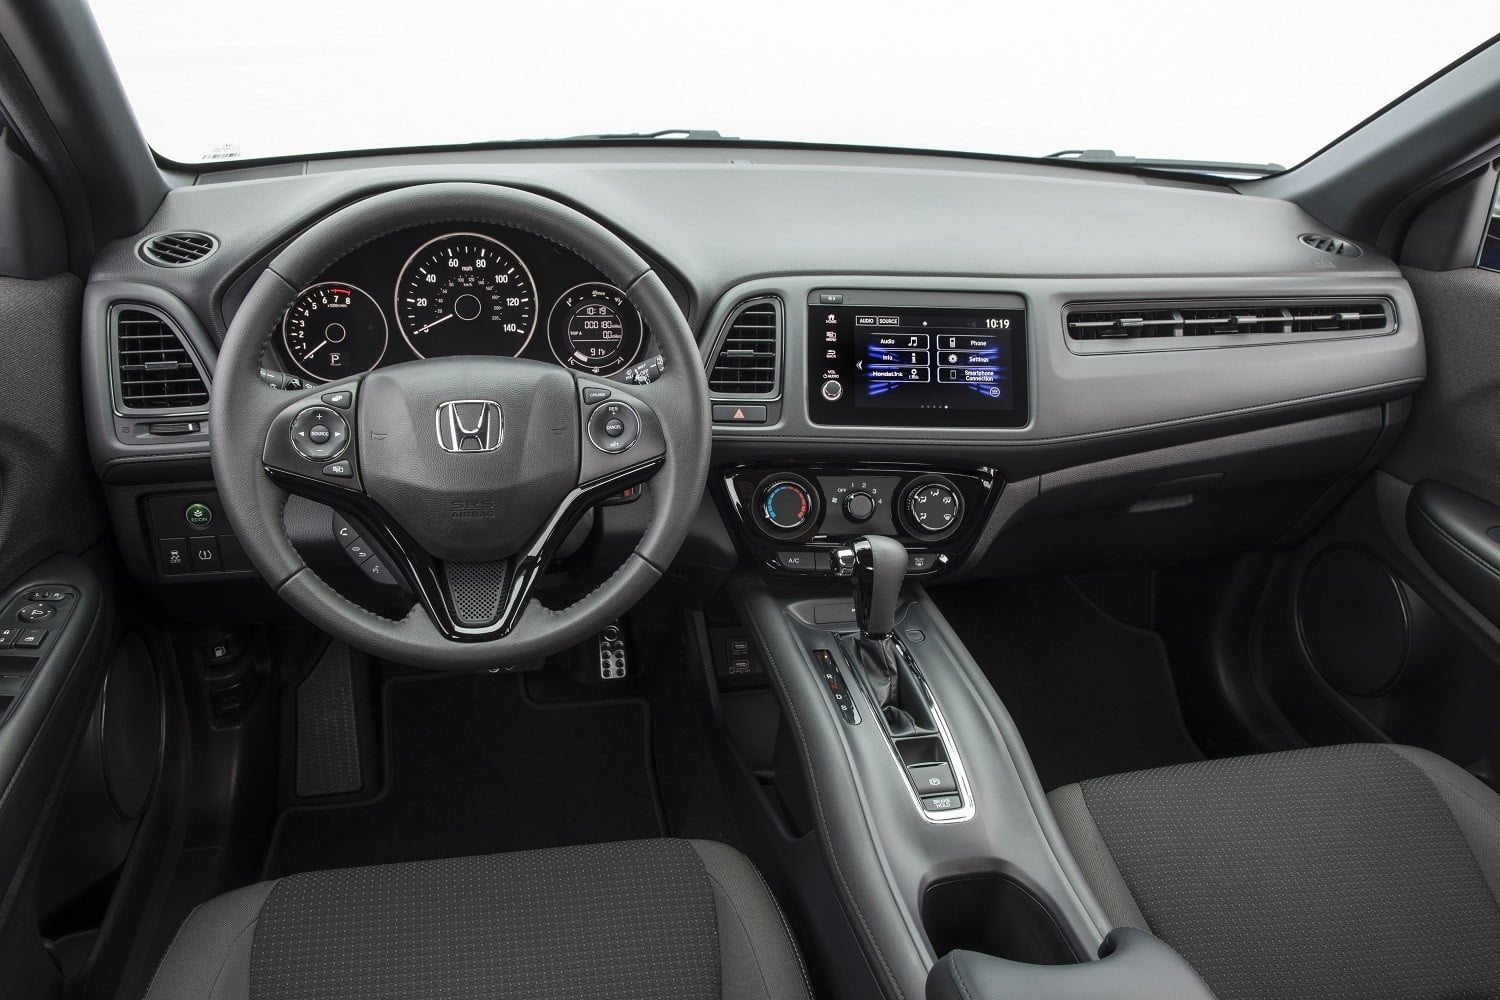 Honda Hr V Vs Honda Cr V Price Specs Performance And More